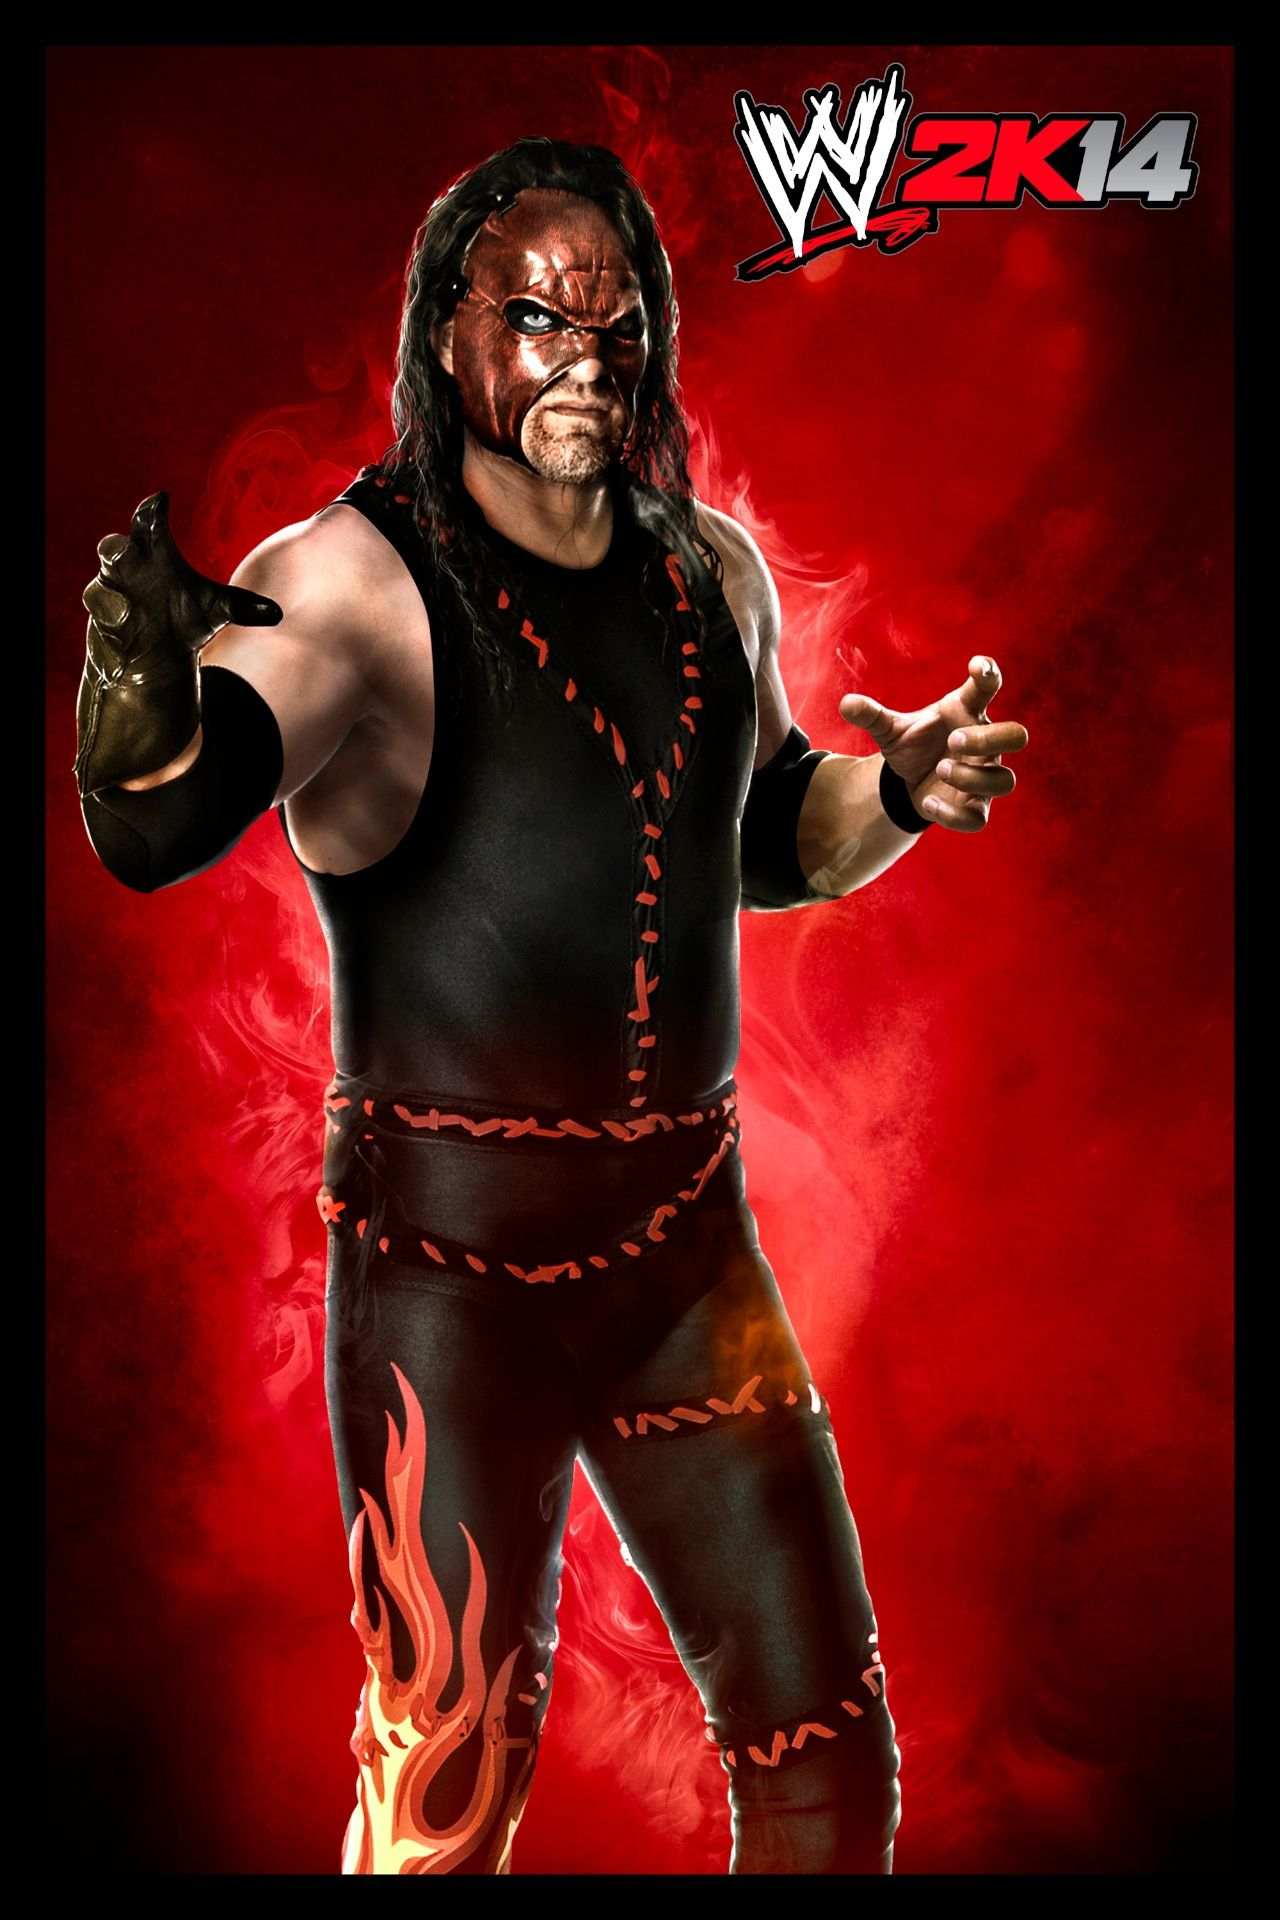 wwe 2k14 kane | wrestling: past and present | pinterest | wwe 2k14